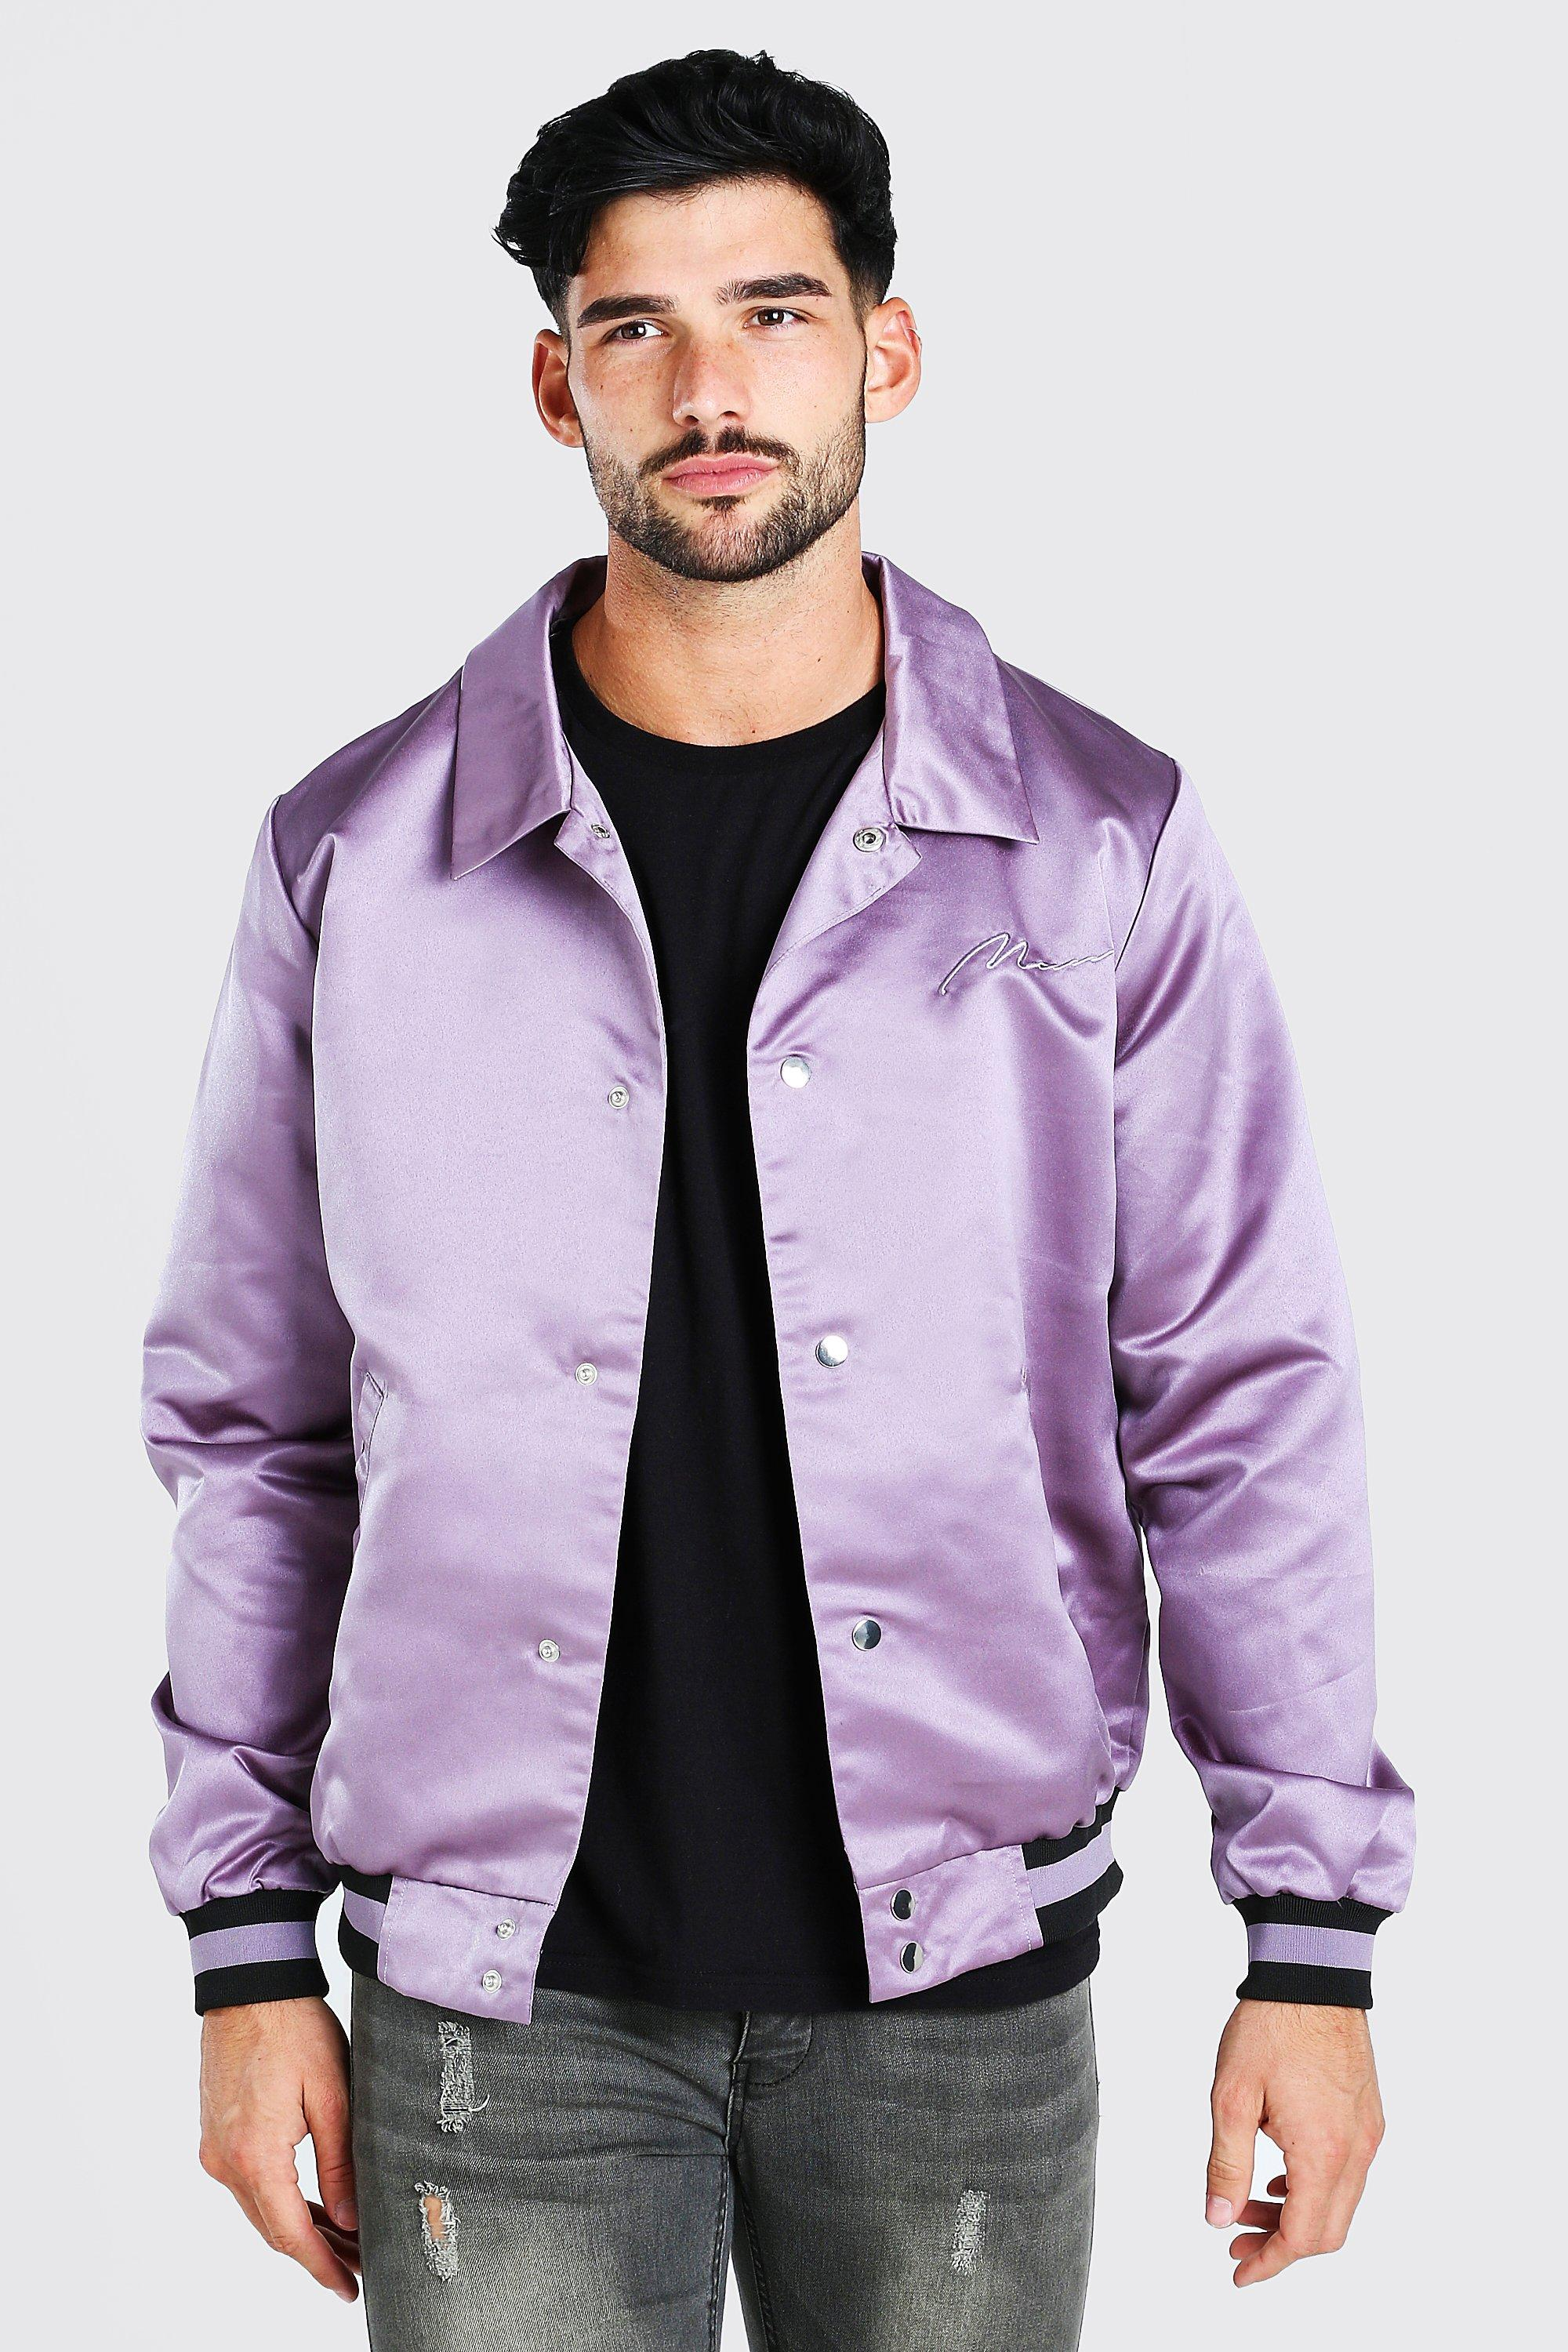 mens satin coach jacket with chest man embroidery - purple